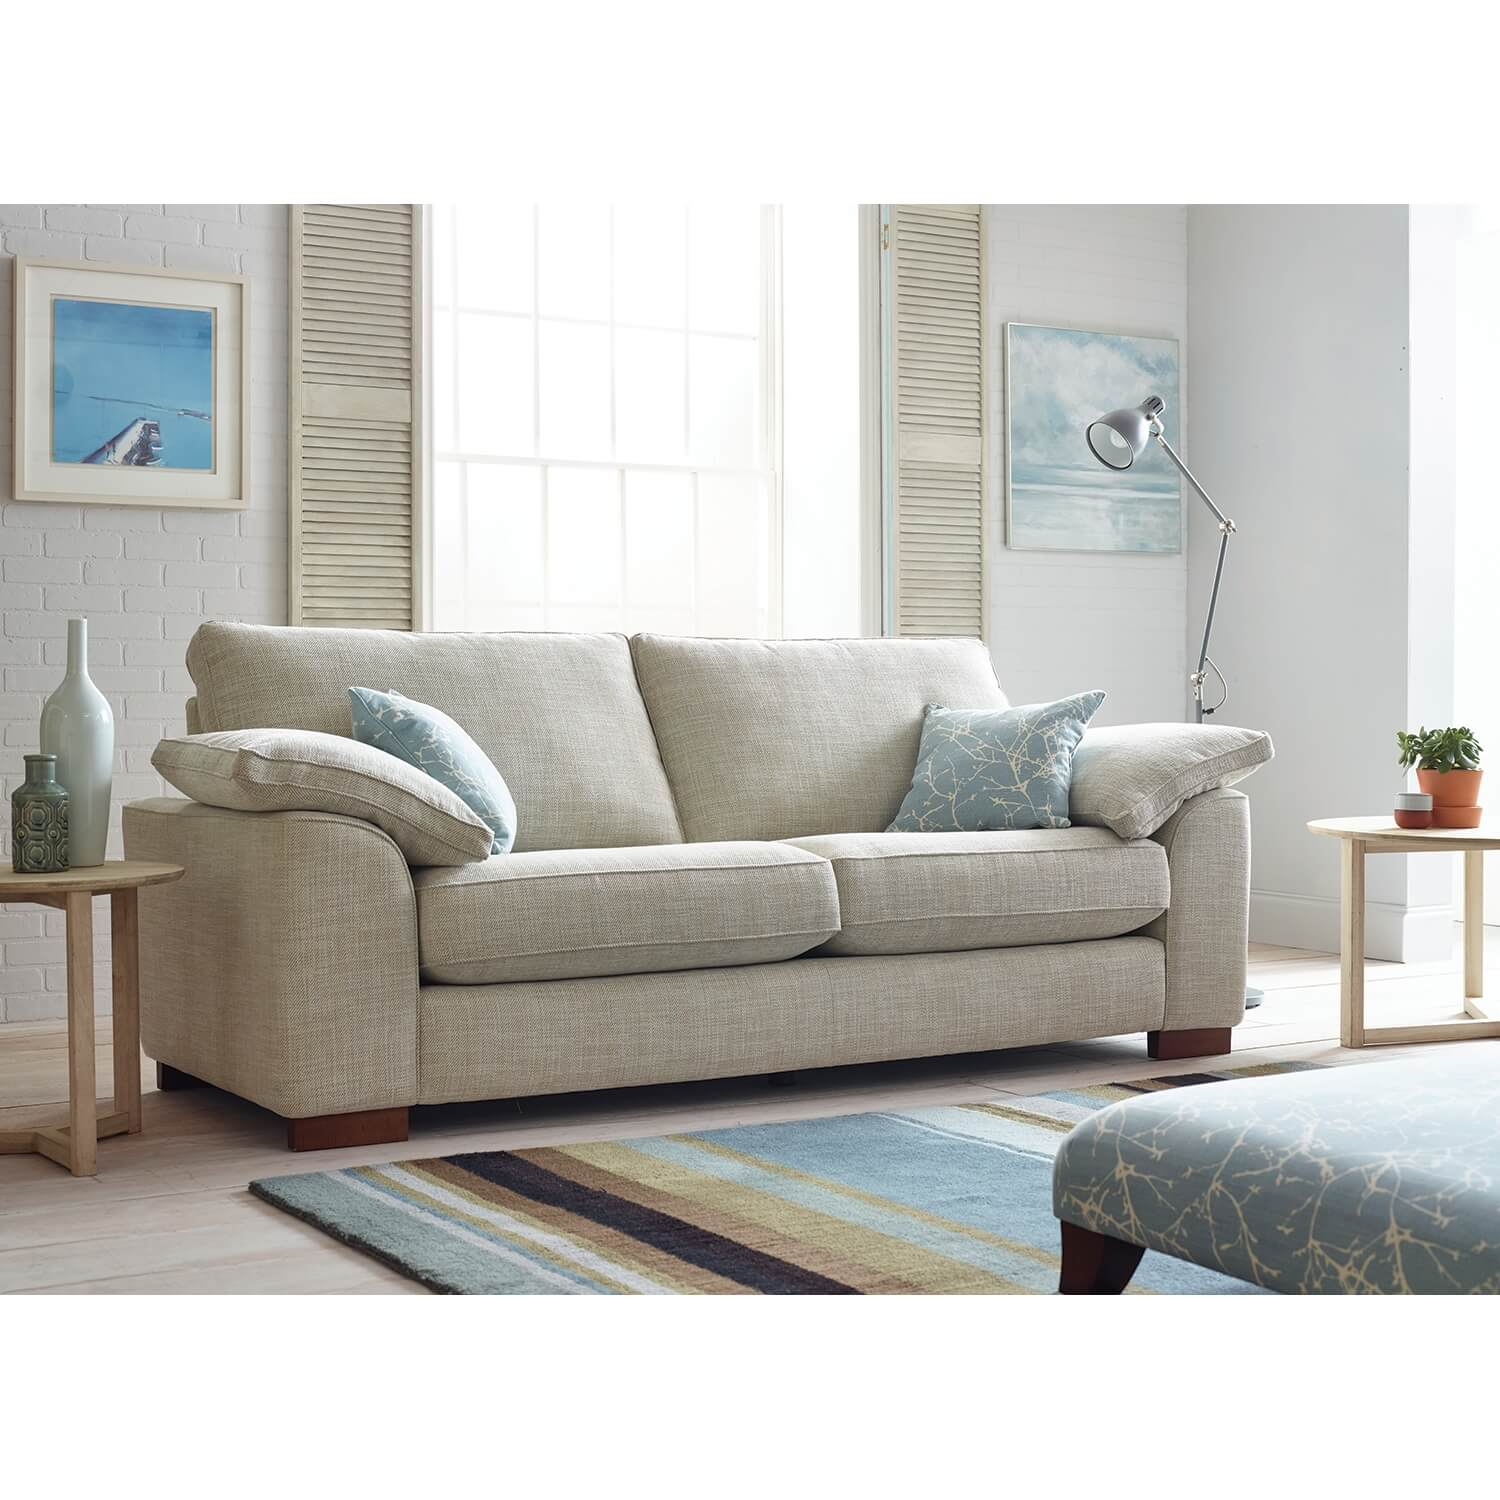 Image of Casa Blaise 4 Seater Fabric Sofa